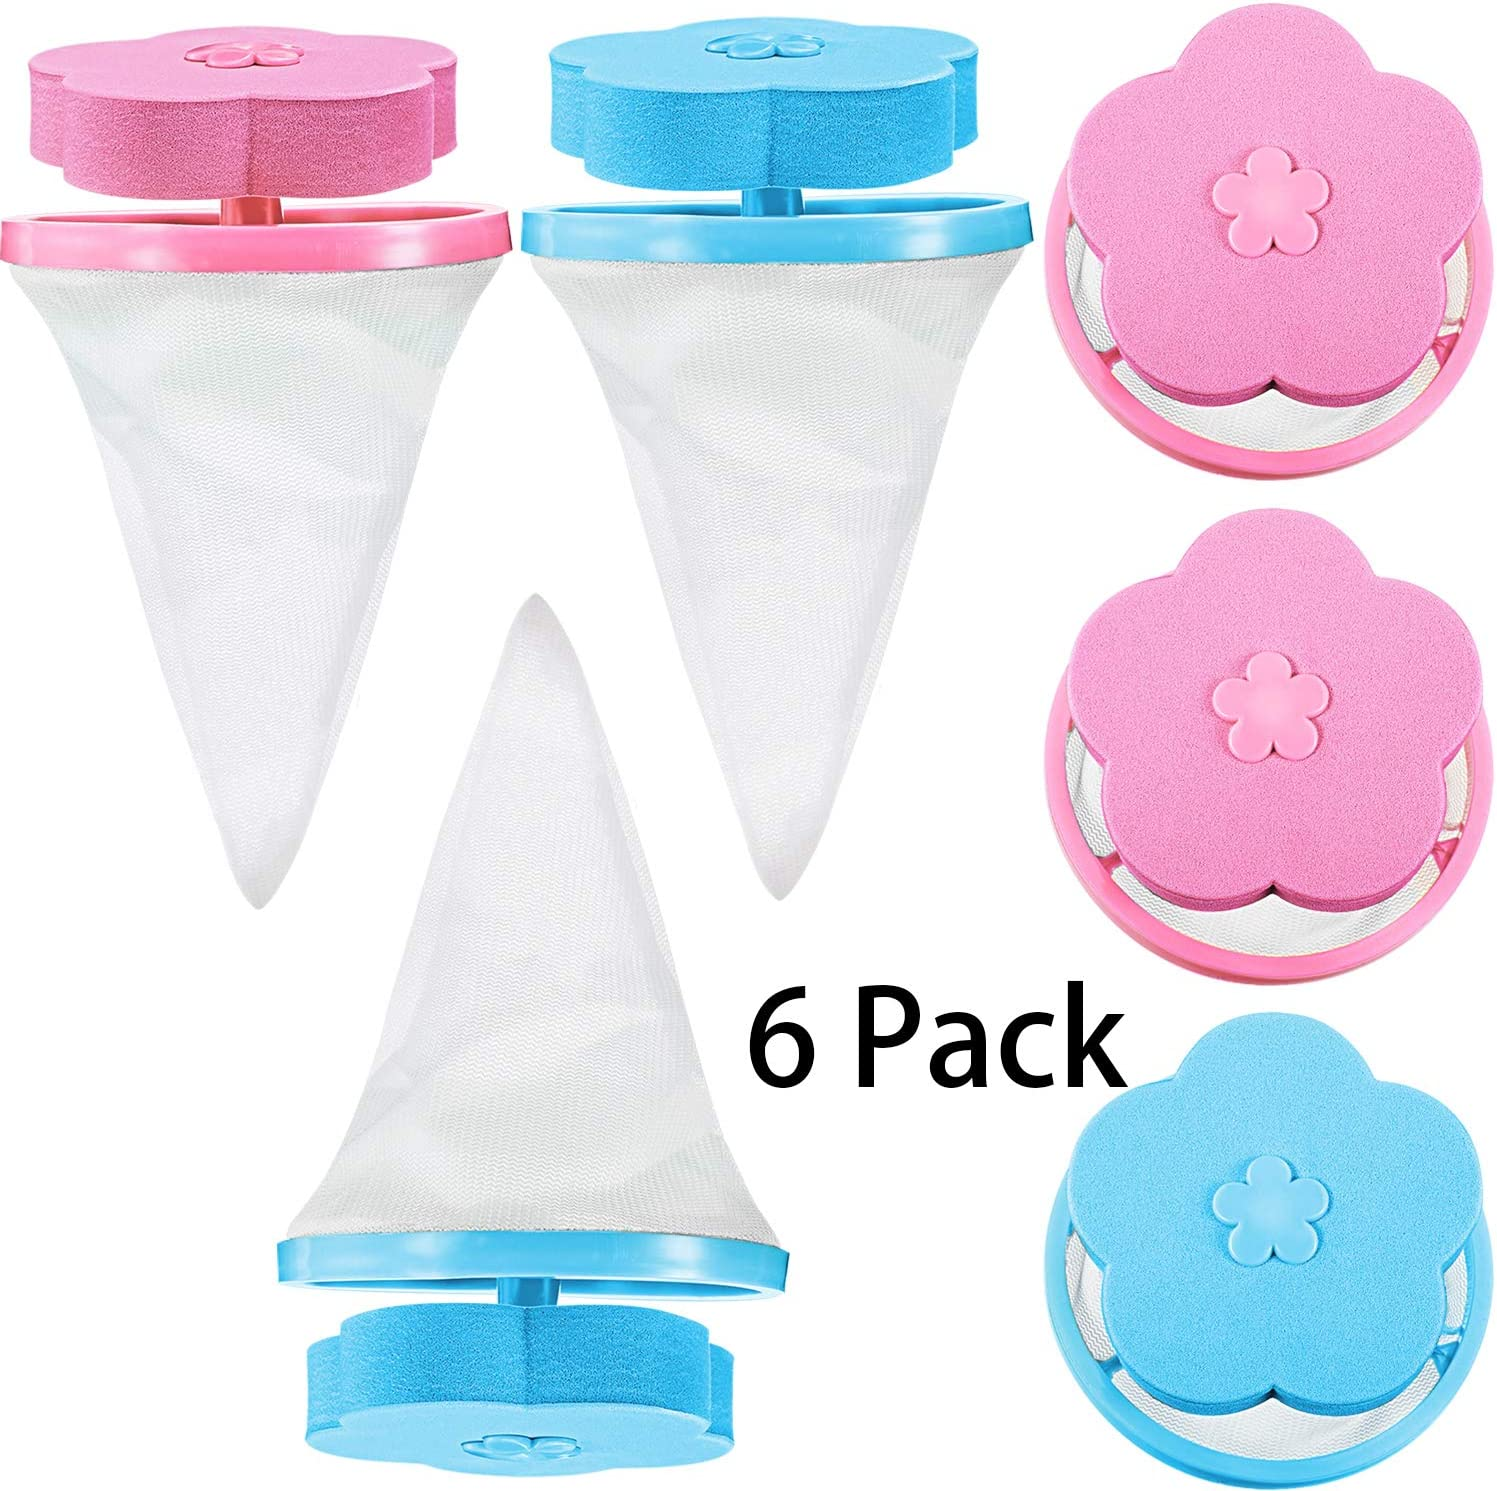 6 Pieces Lint Catcher Washing Machine Lint Traps Lint Mesh Bag Household Reusable Hair Filter Net Pouch, Blue and Pink